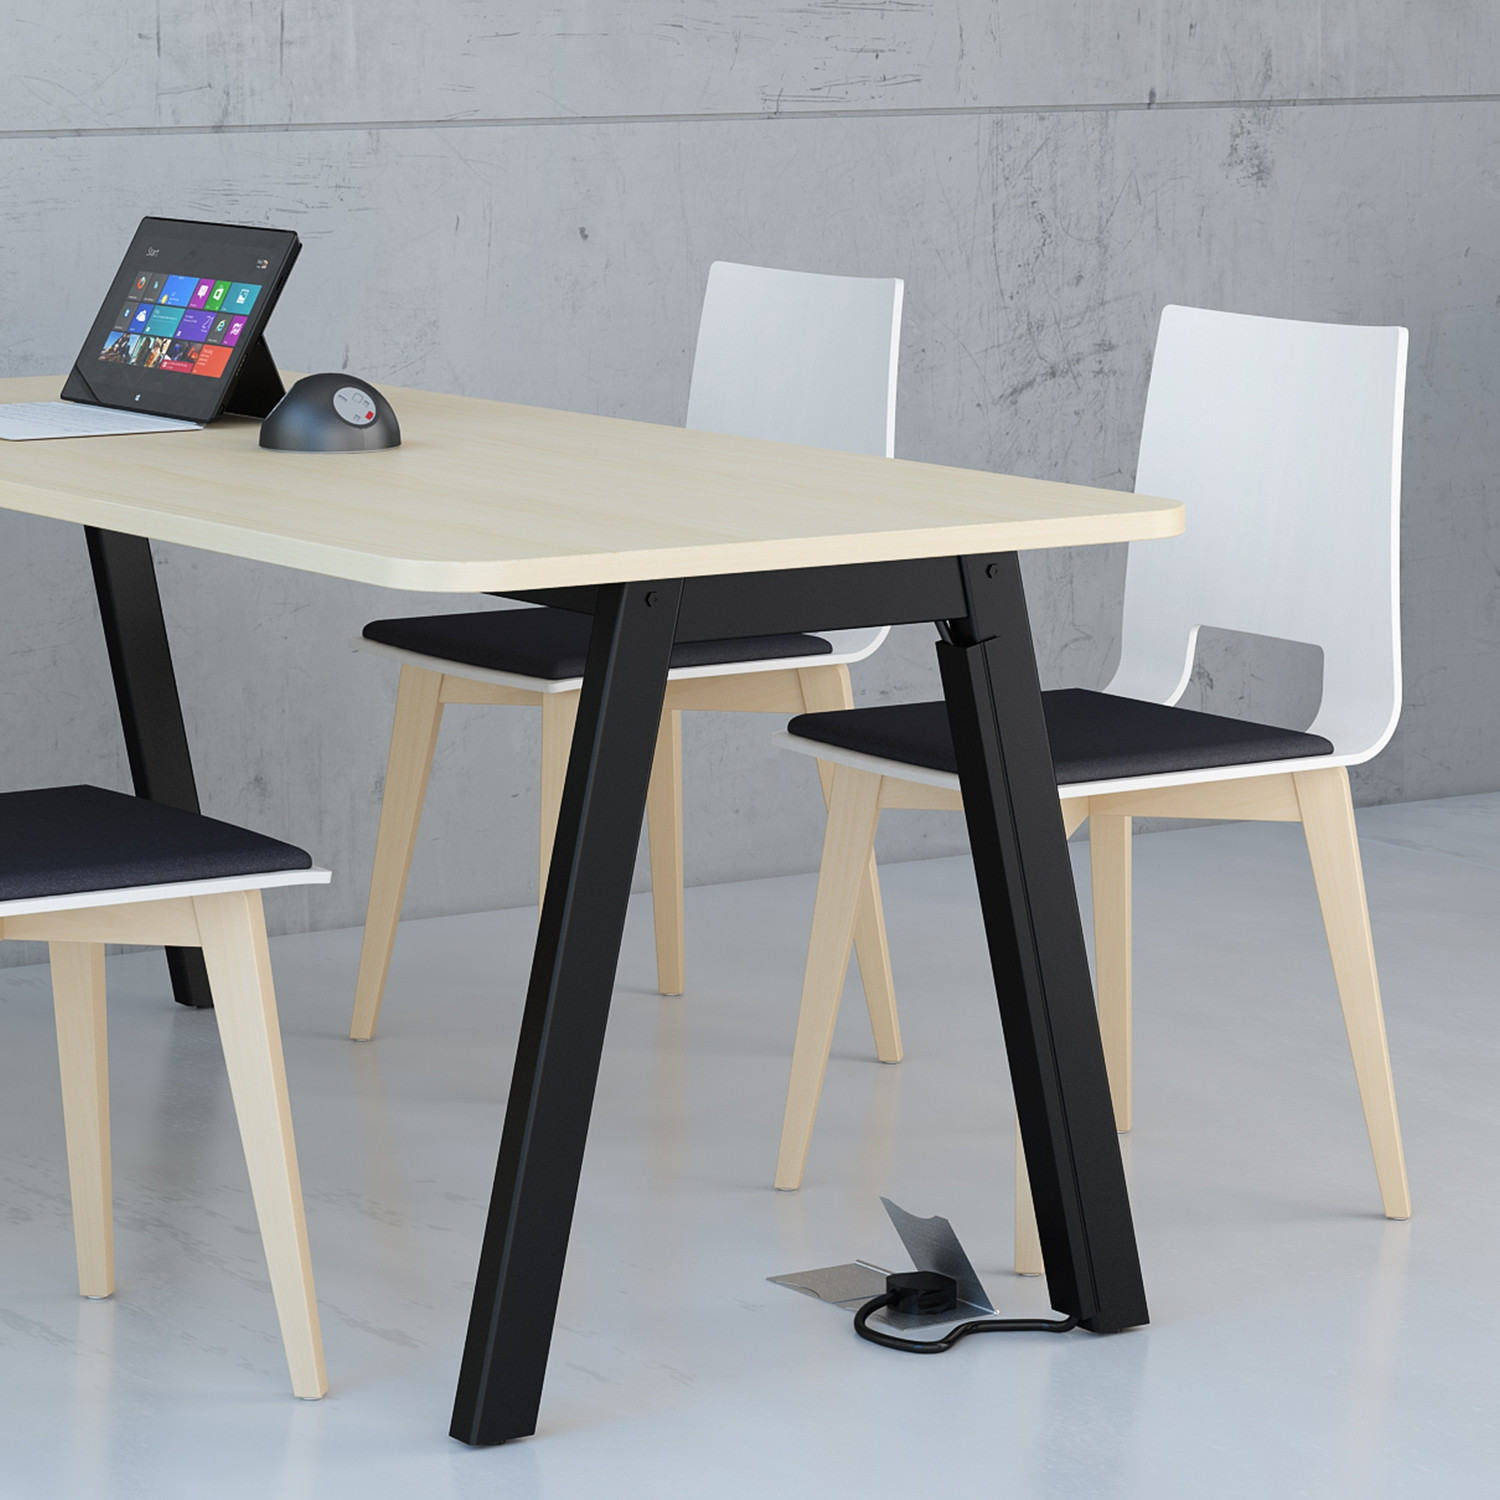 Low Bench Table - 725mm High